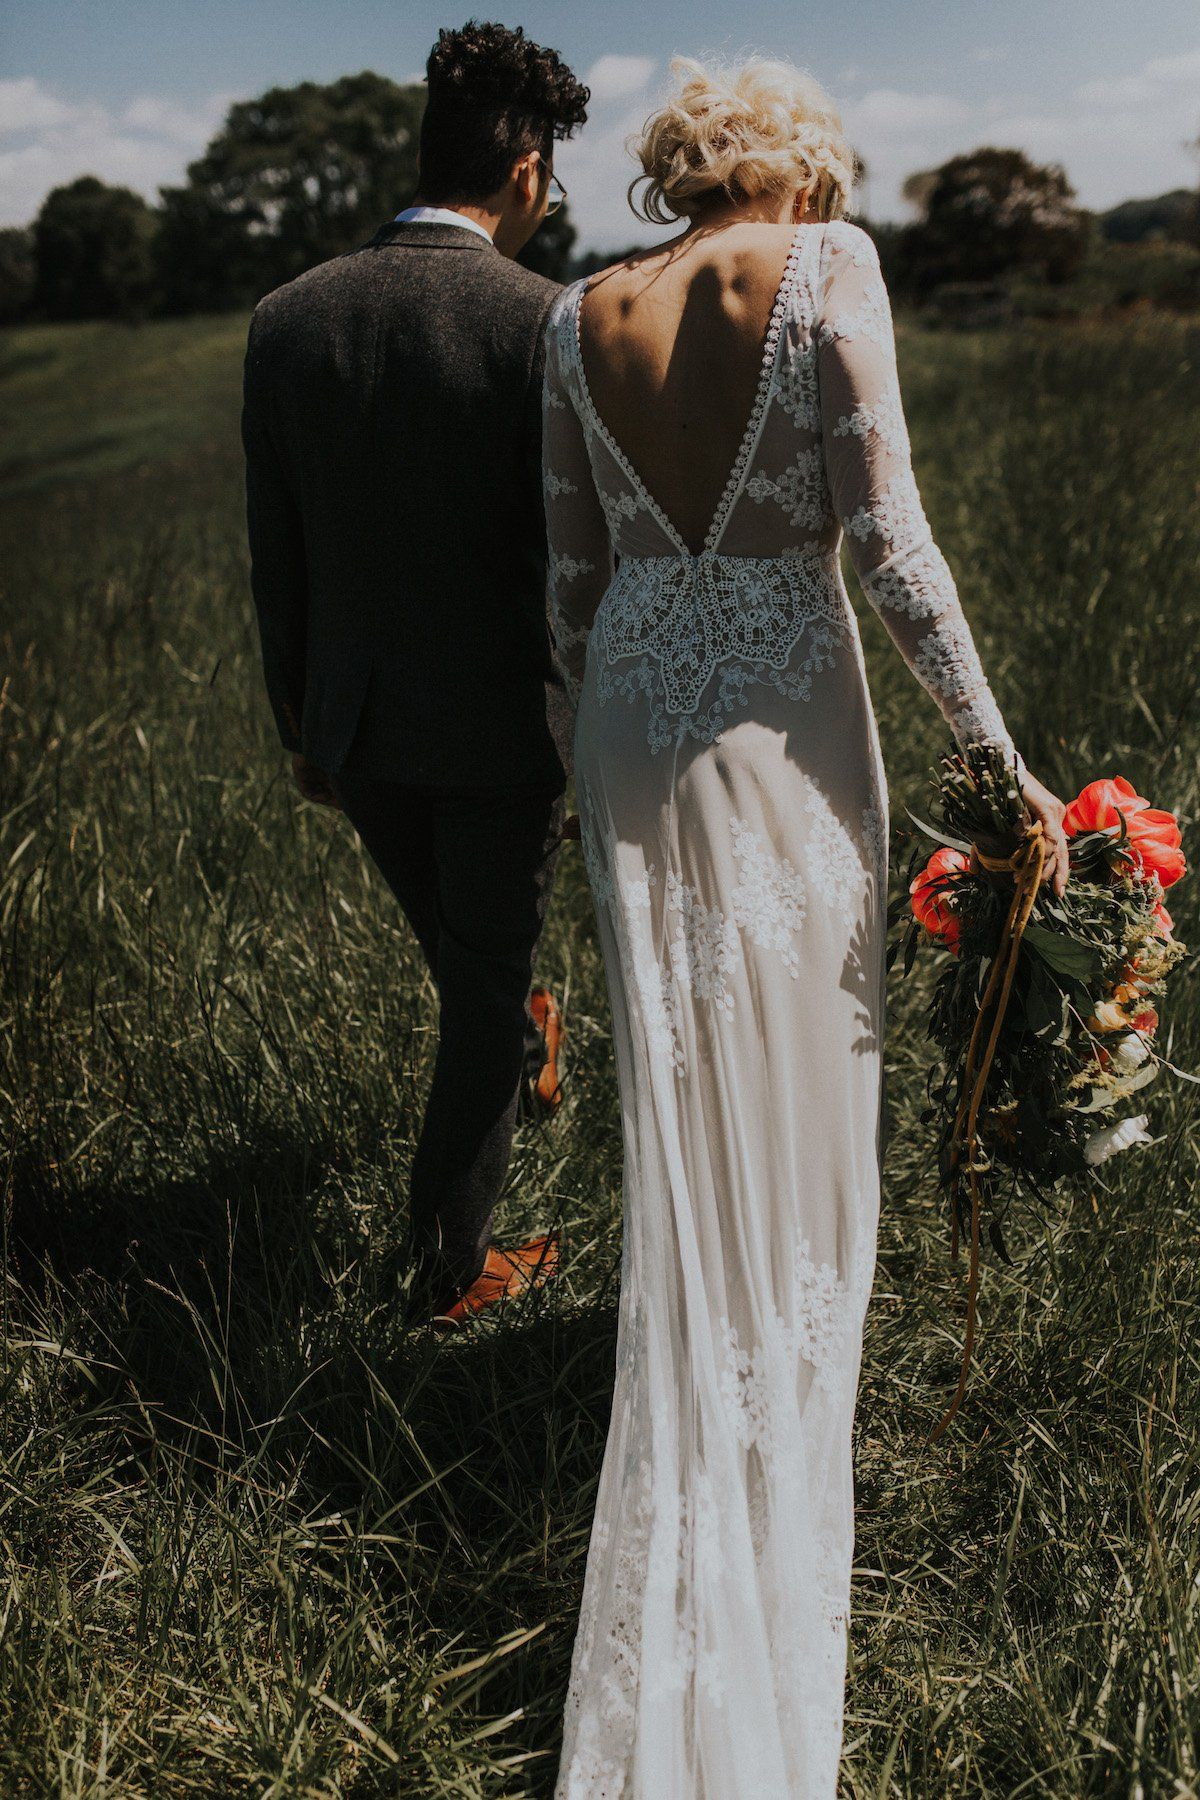 Thewalkweddingdressesinspirationforthelaidbackbohobride